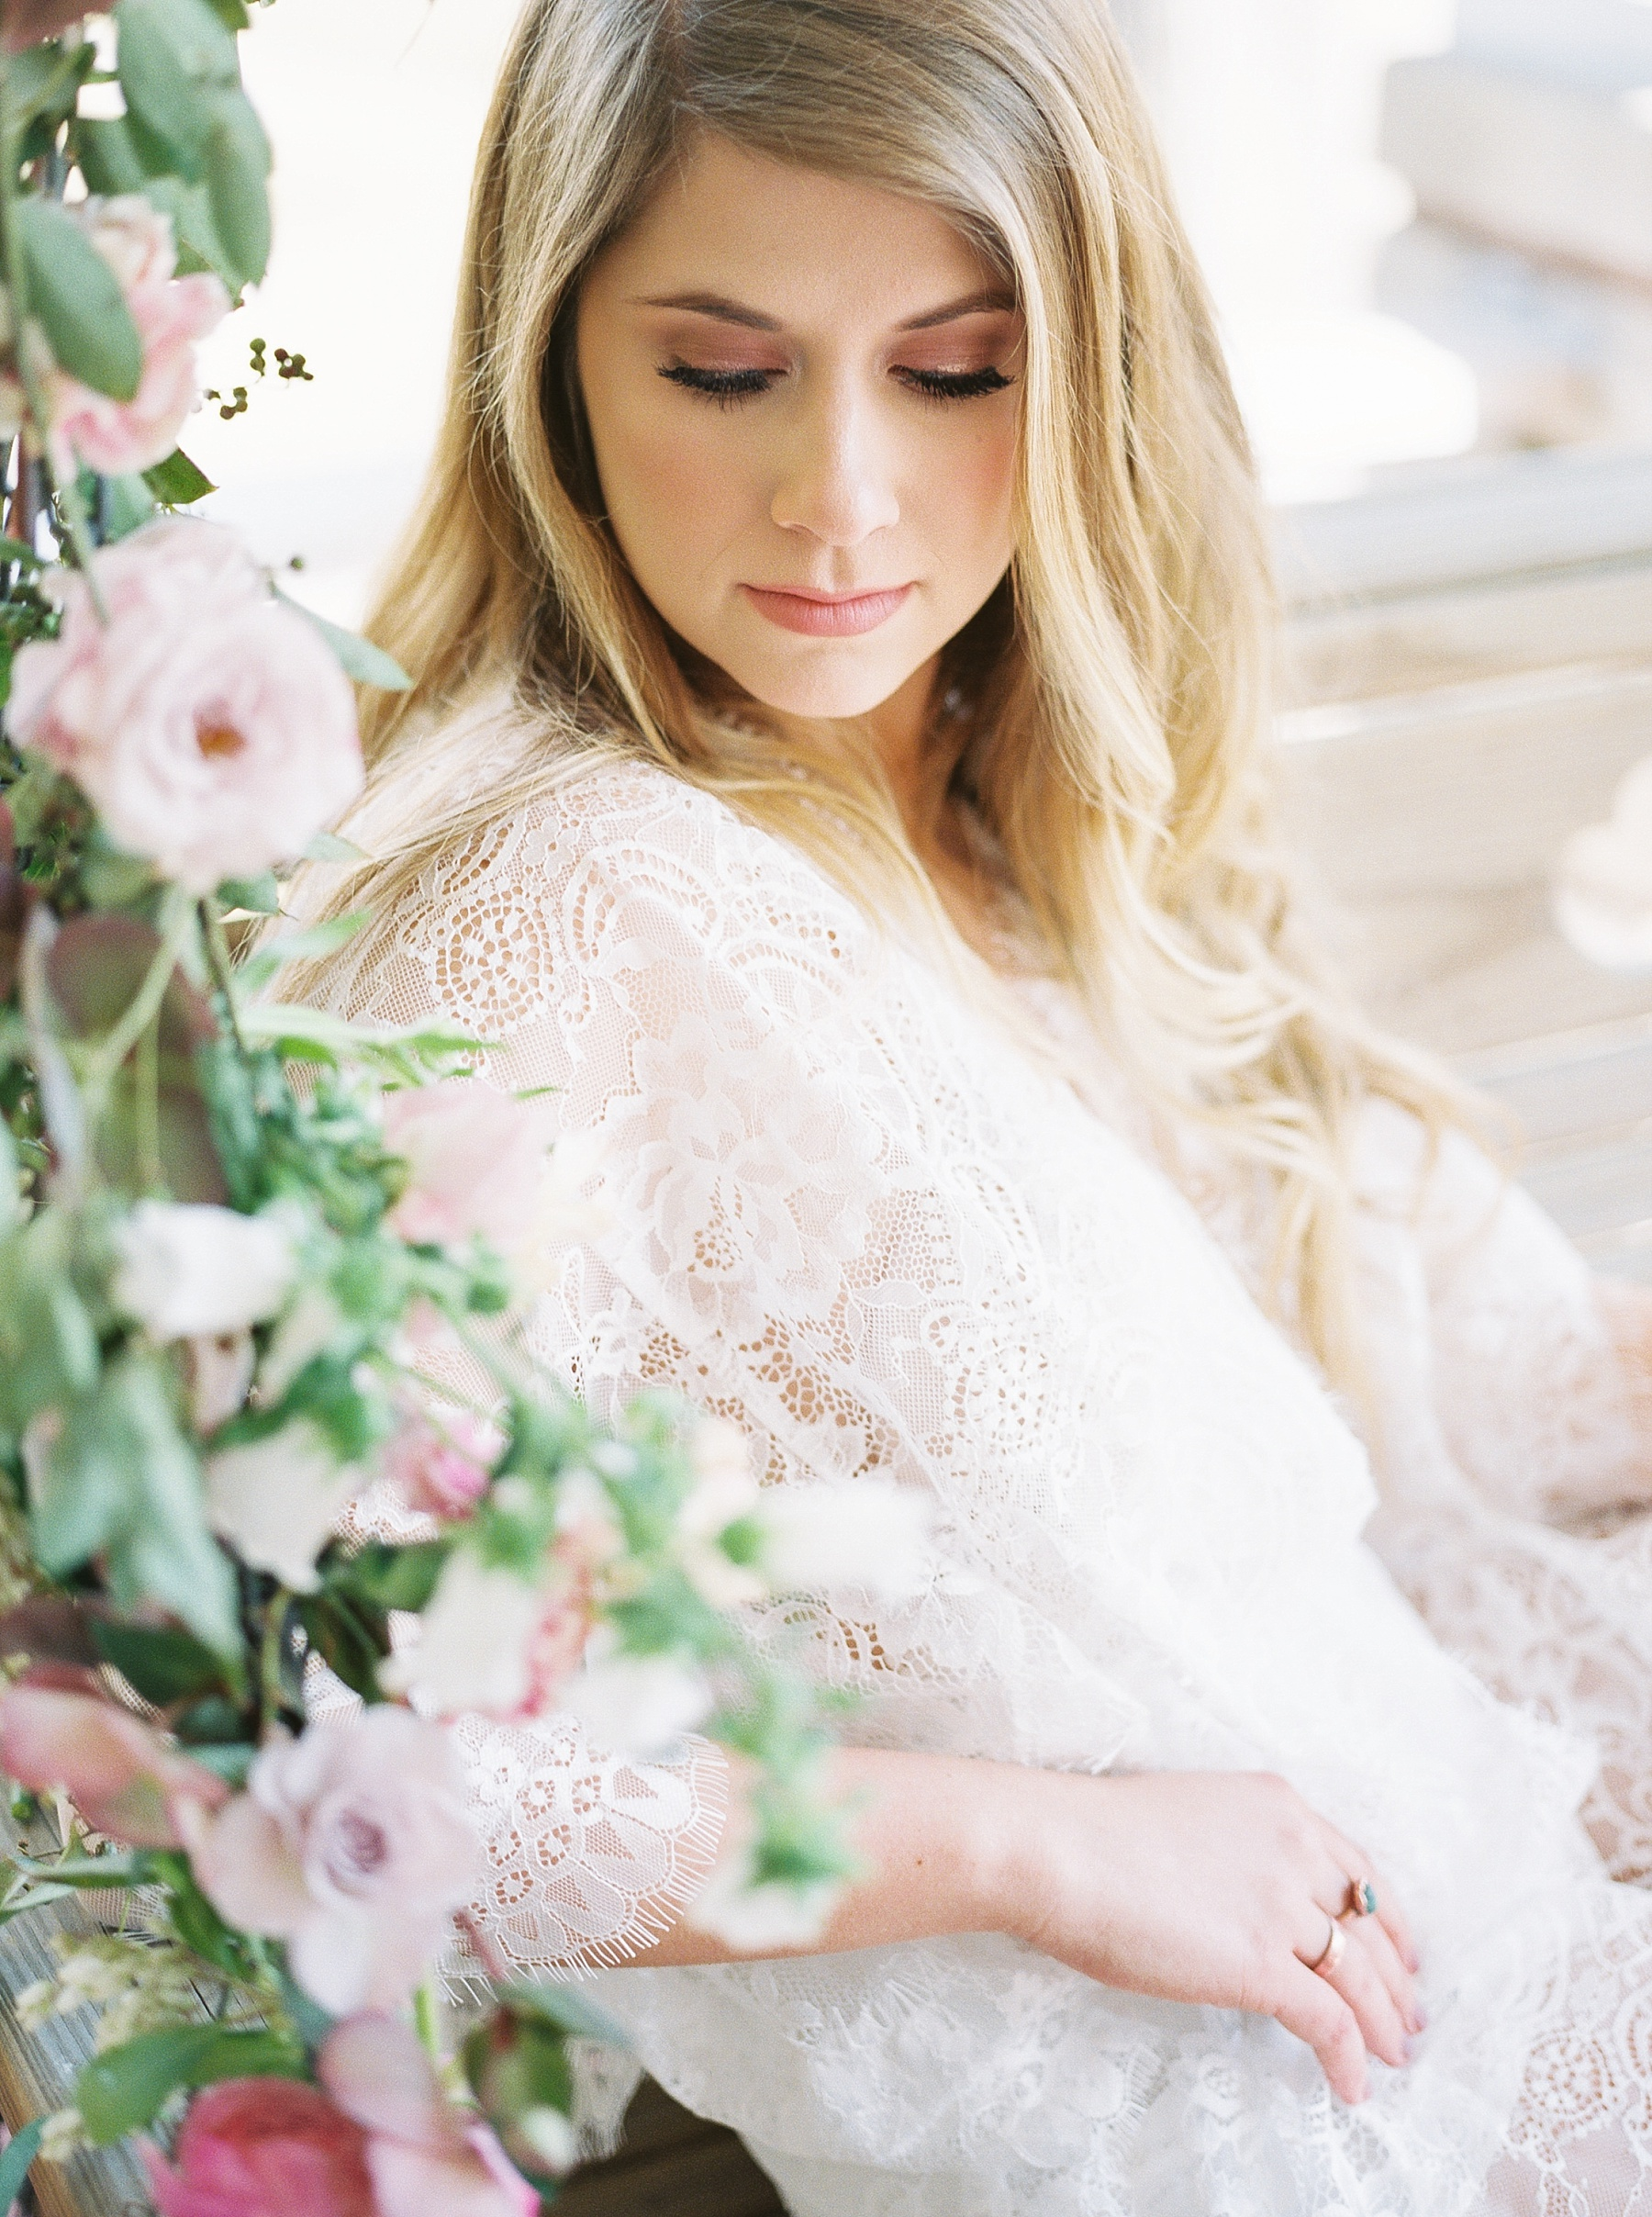 Natural, Intimate, and Organic Bridal Session on Steps of Century Old Bed and Breakfast by Kelsi Kliethermes Photography Best Missouri and Maui Wedding Photographer_0020.jpg